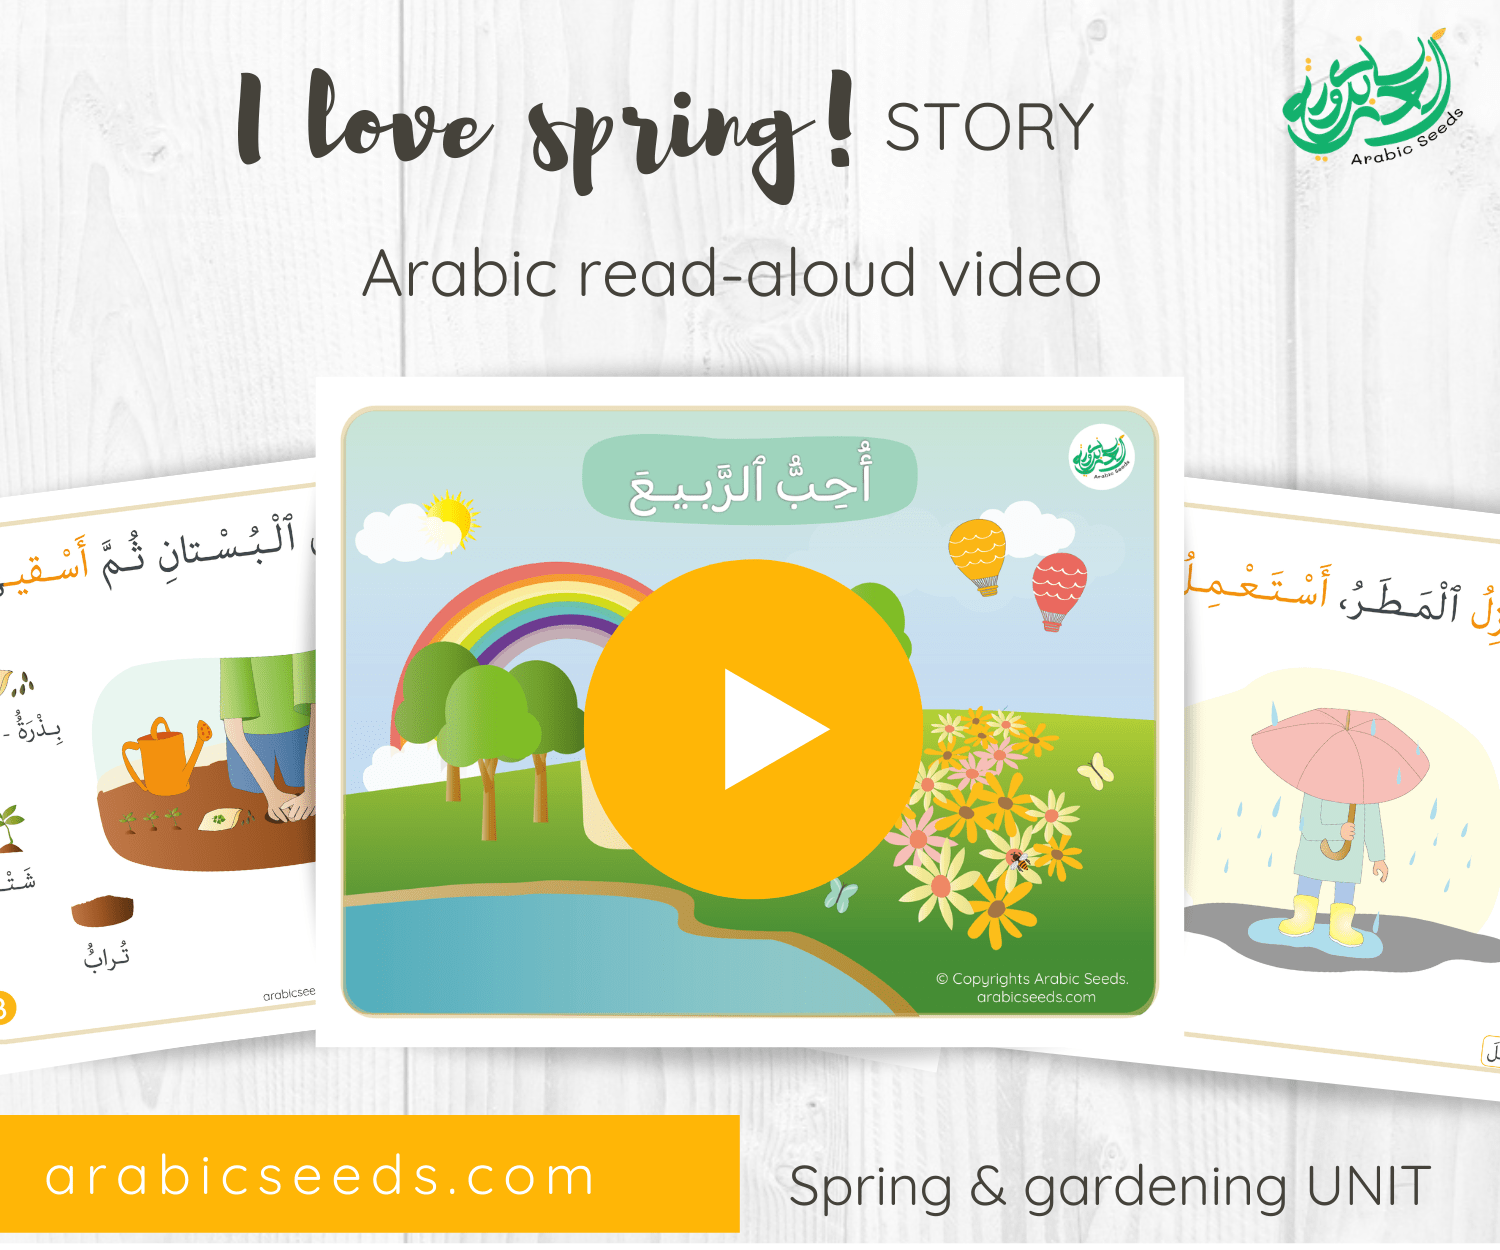 Arabic spring season Story for kids read aloud video - spring themed unit - Arabic Seeds